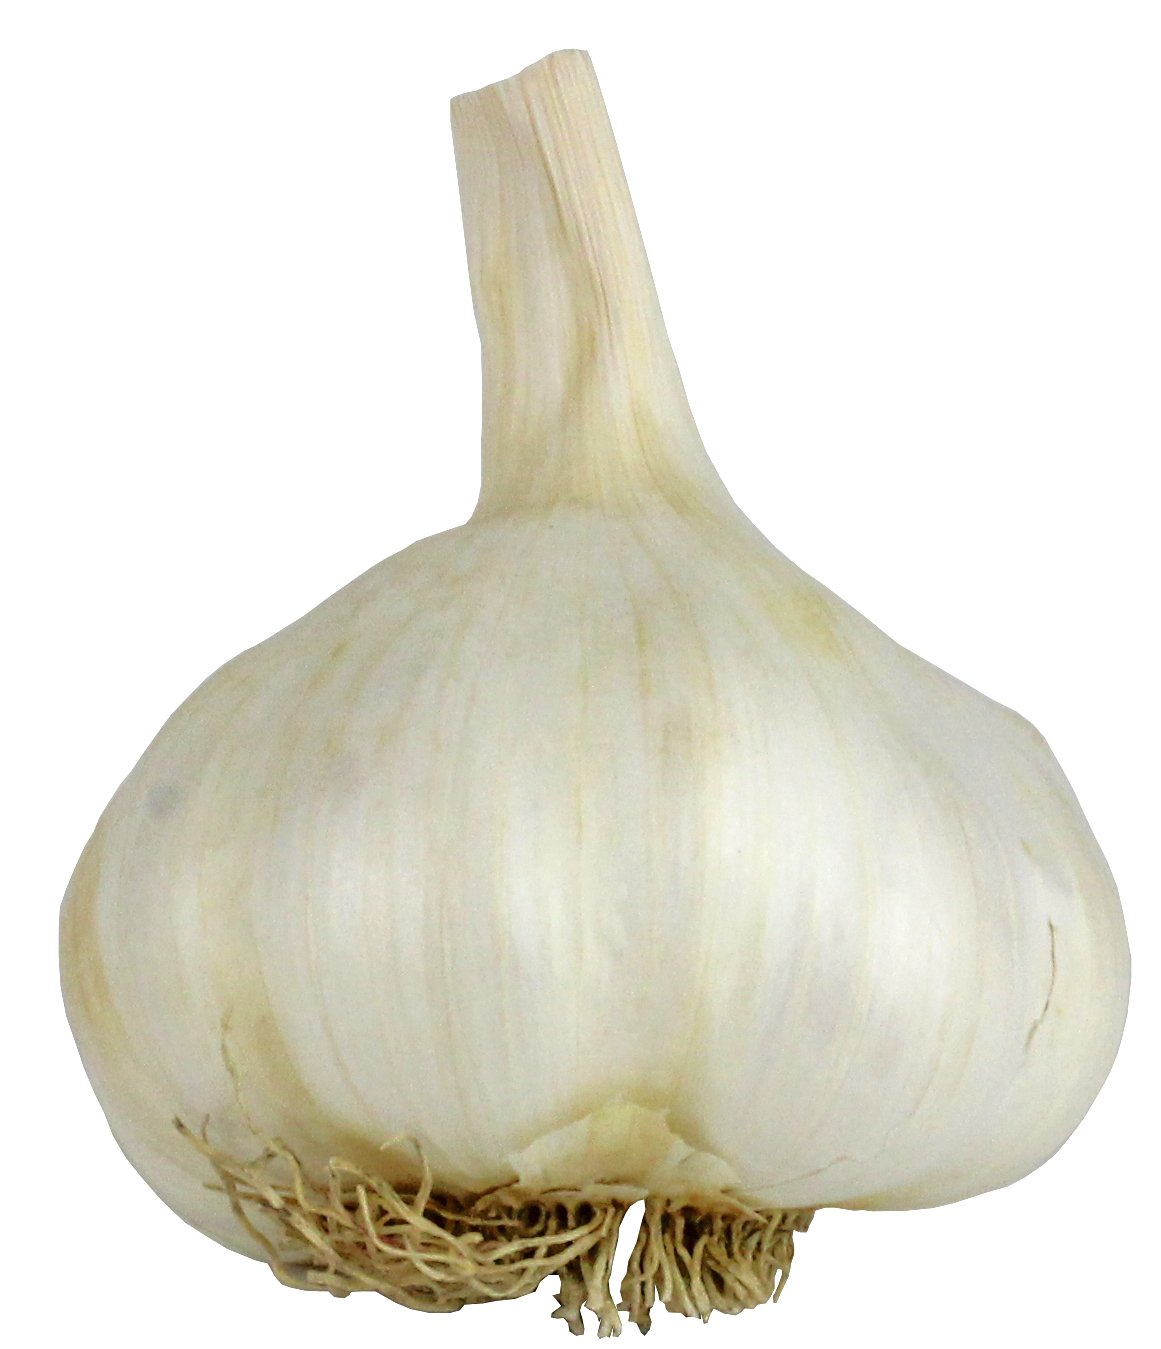 onions garlic shop h e b everyday low prices